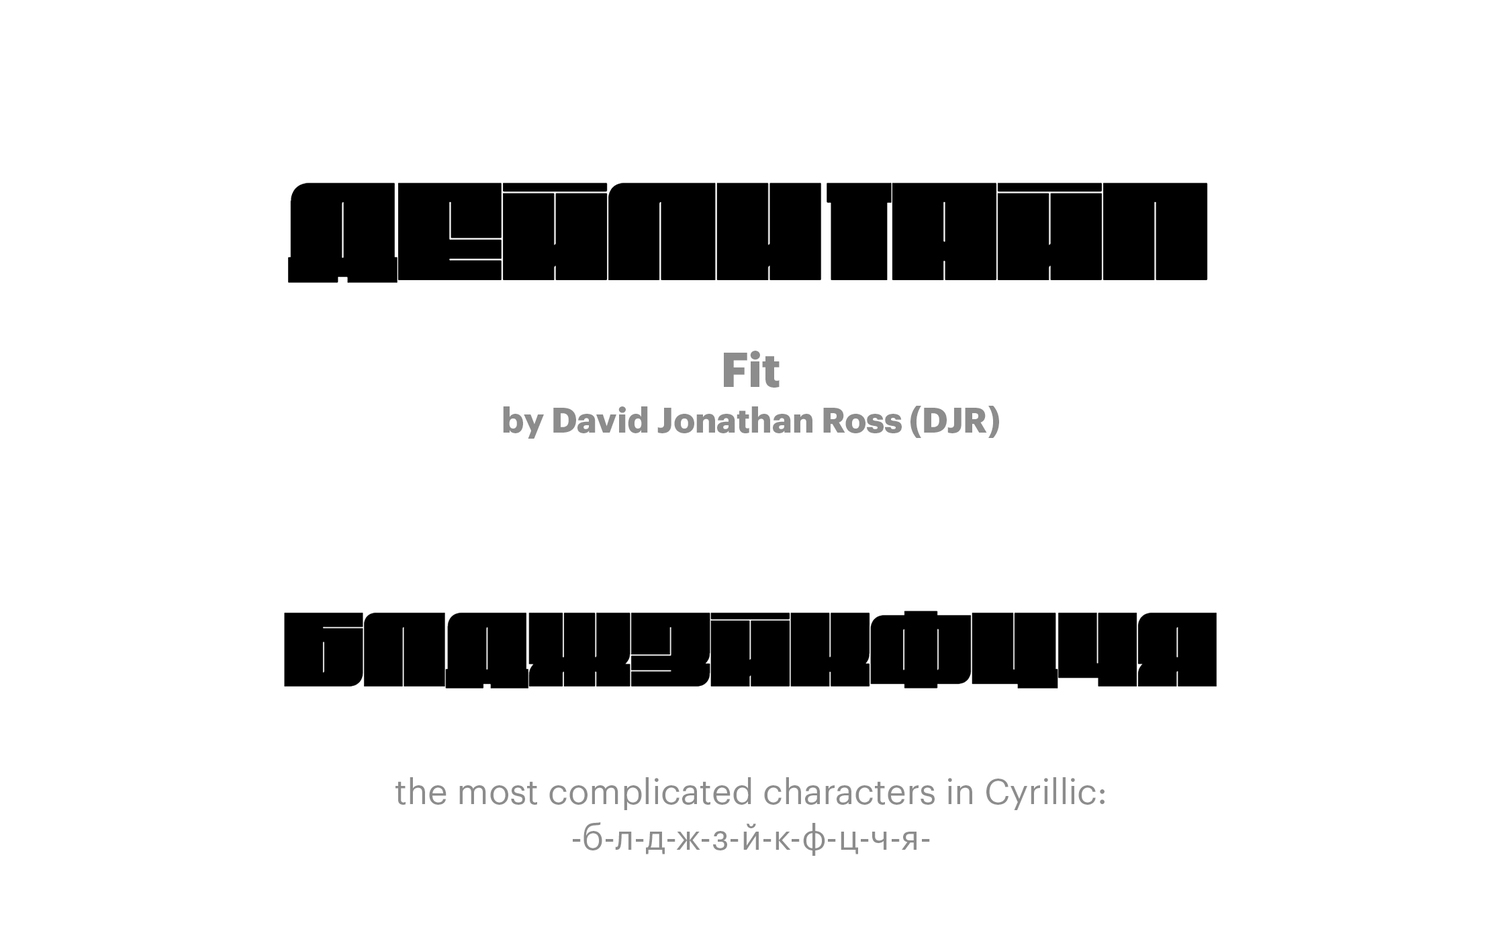 Fit-by-David-Jonathan-Ross-(DJR)